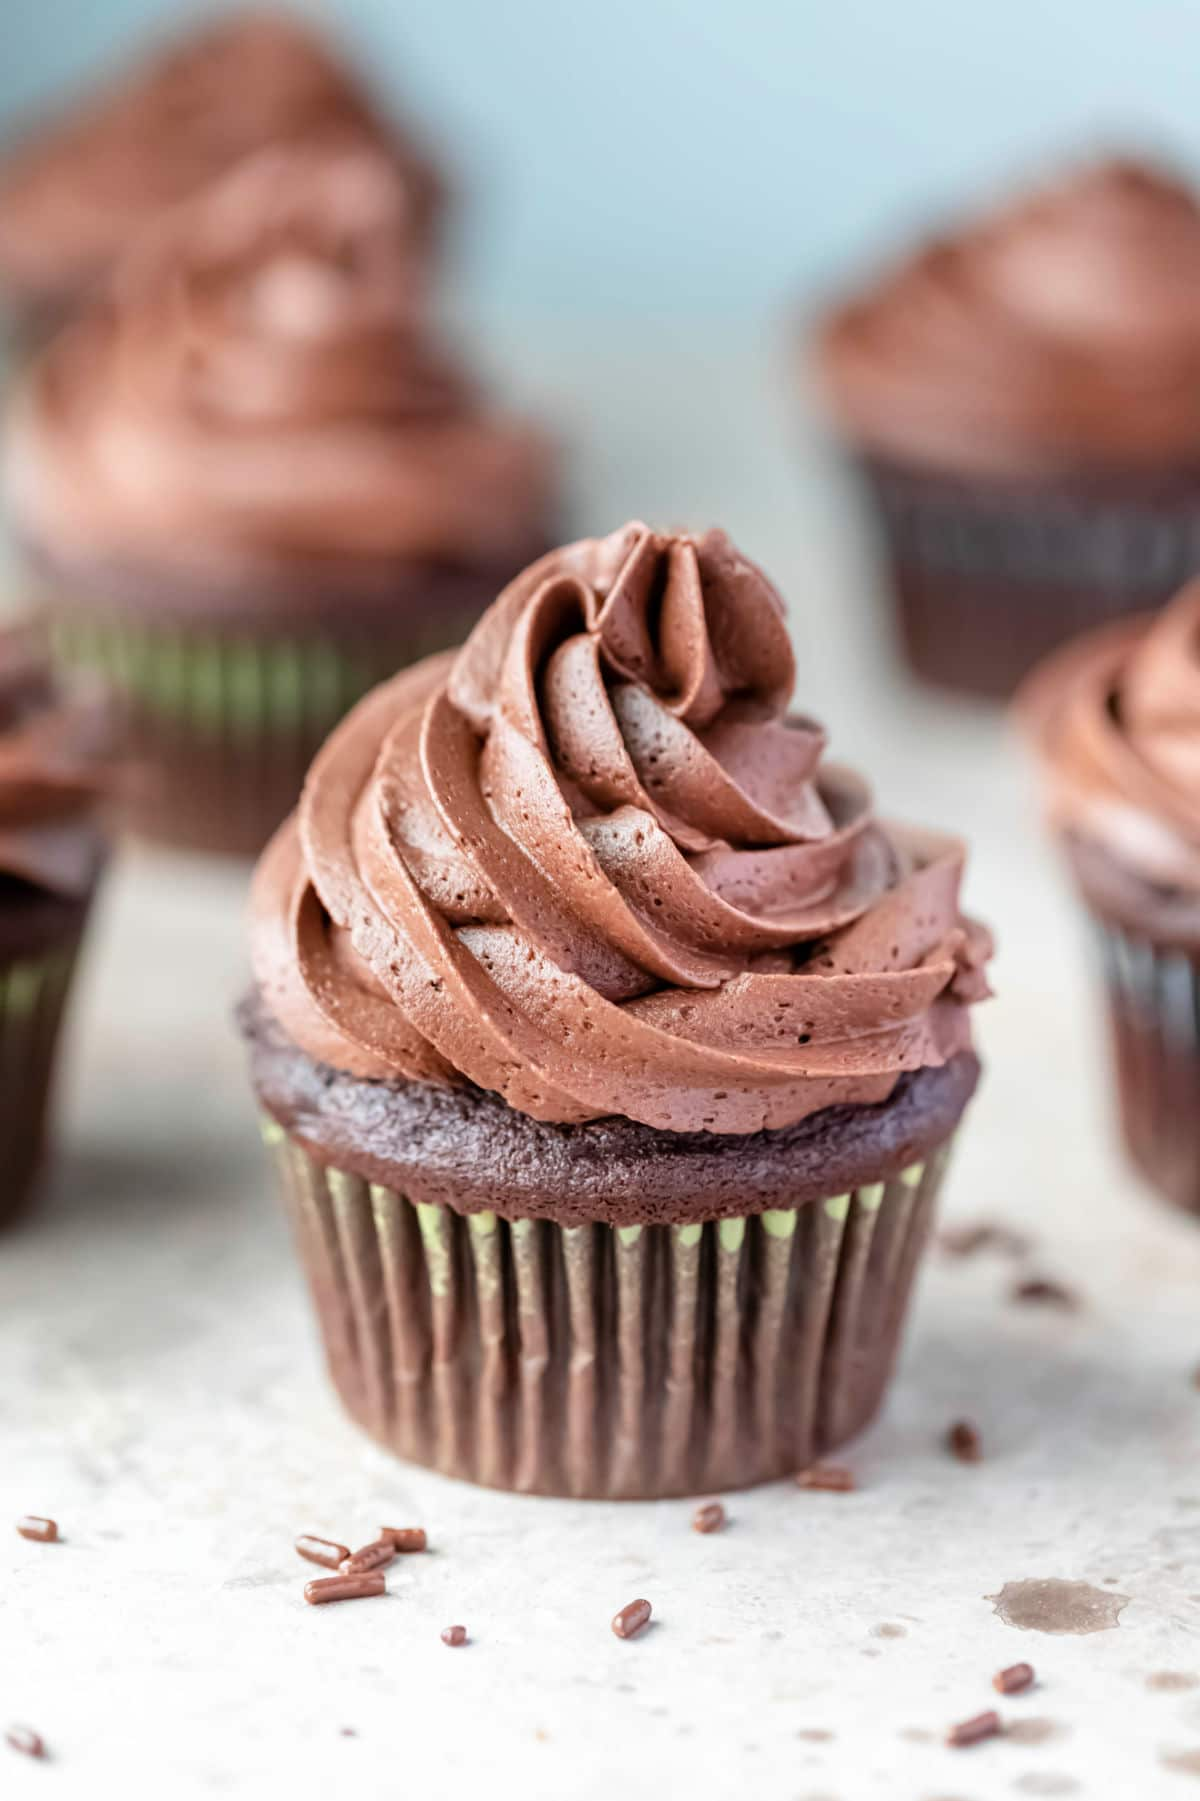 Chocolate cupcake surrounded by other chocolate cupcakes.